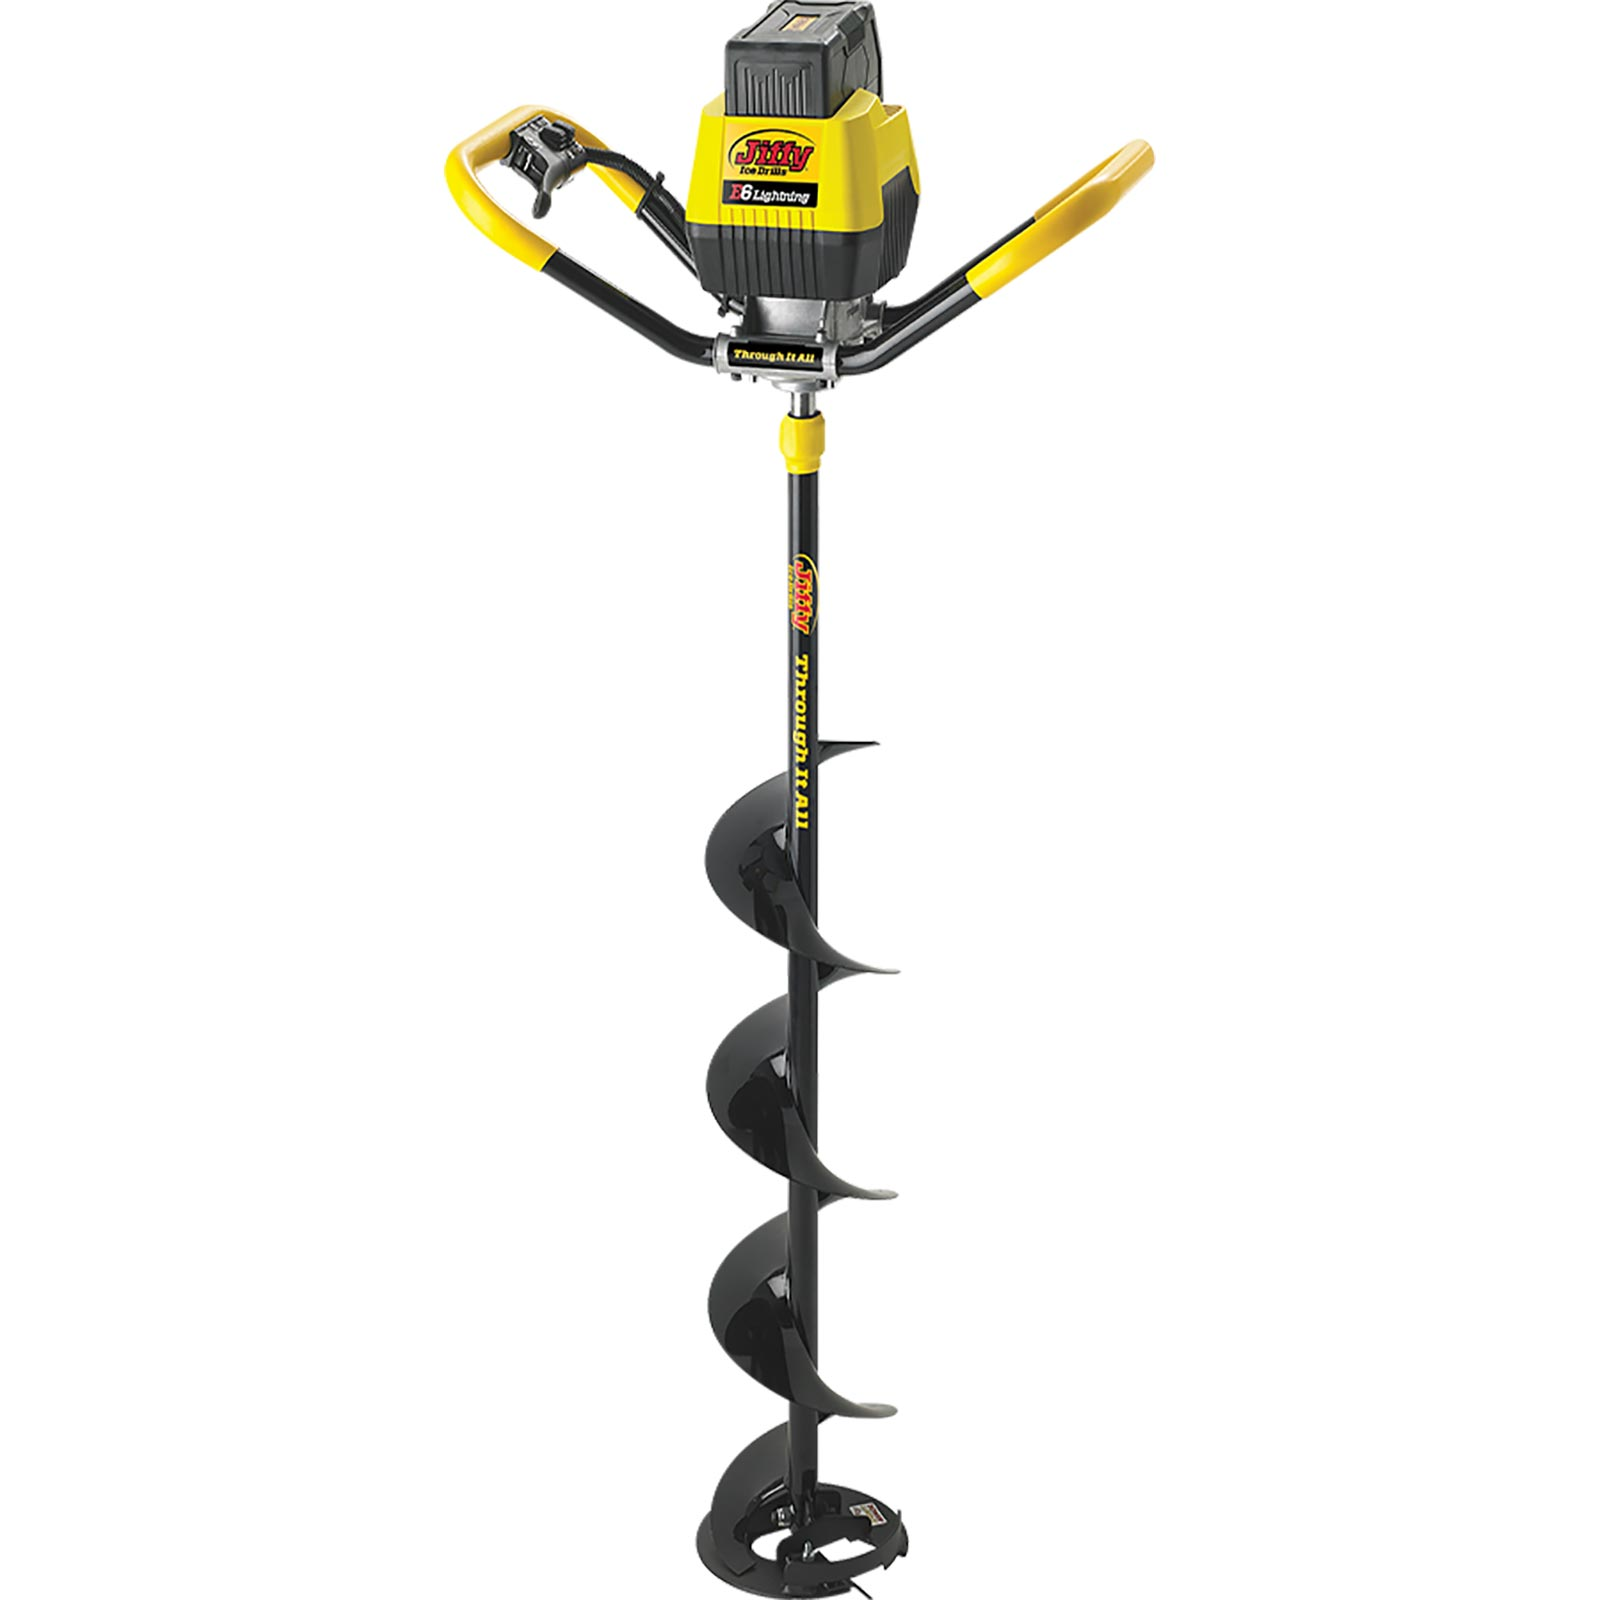 Jiffy Model 56 E6 Lightning Electric Ice Auger